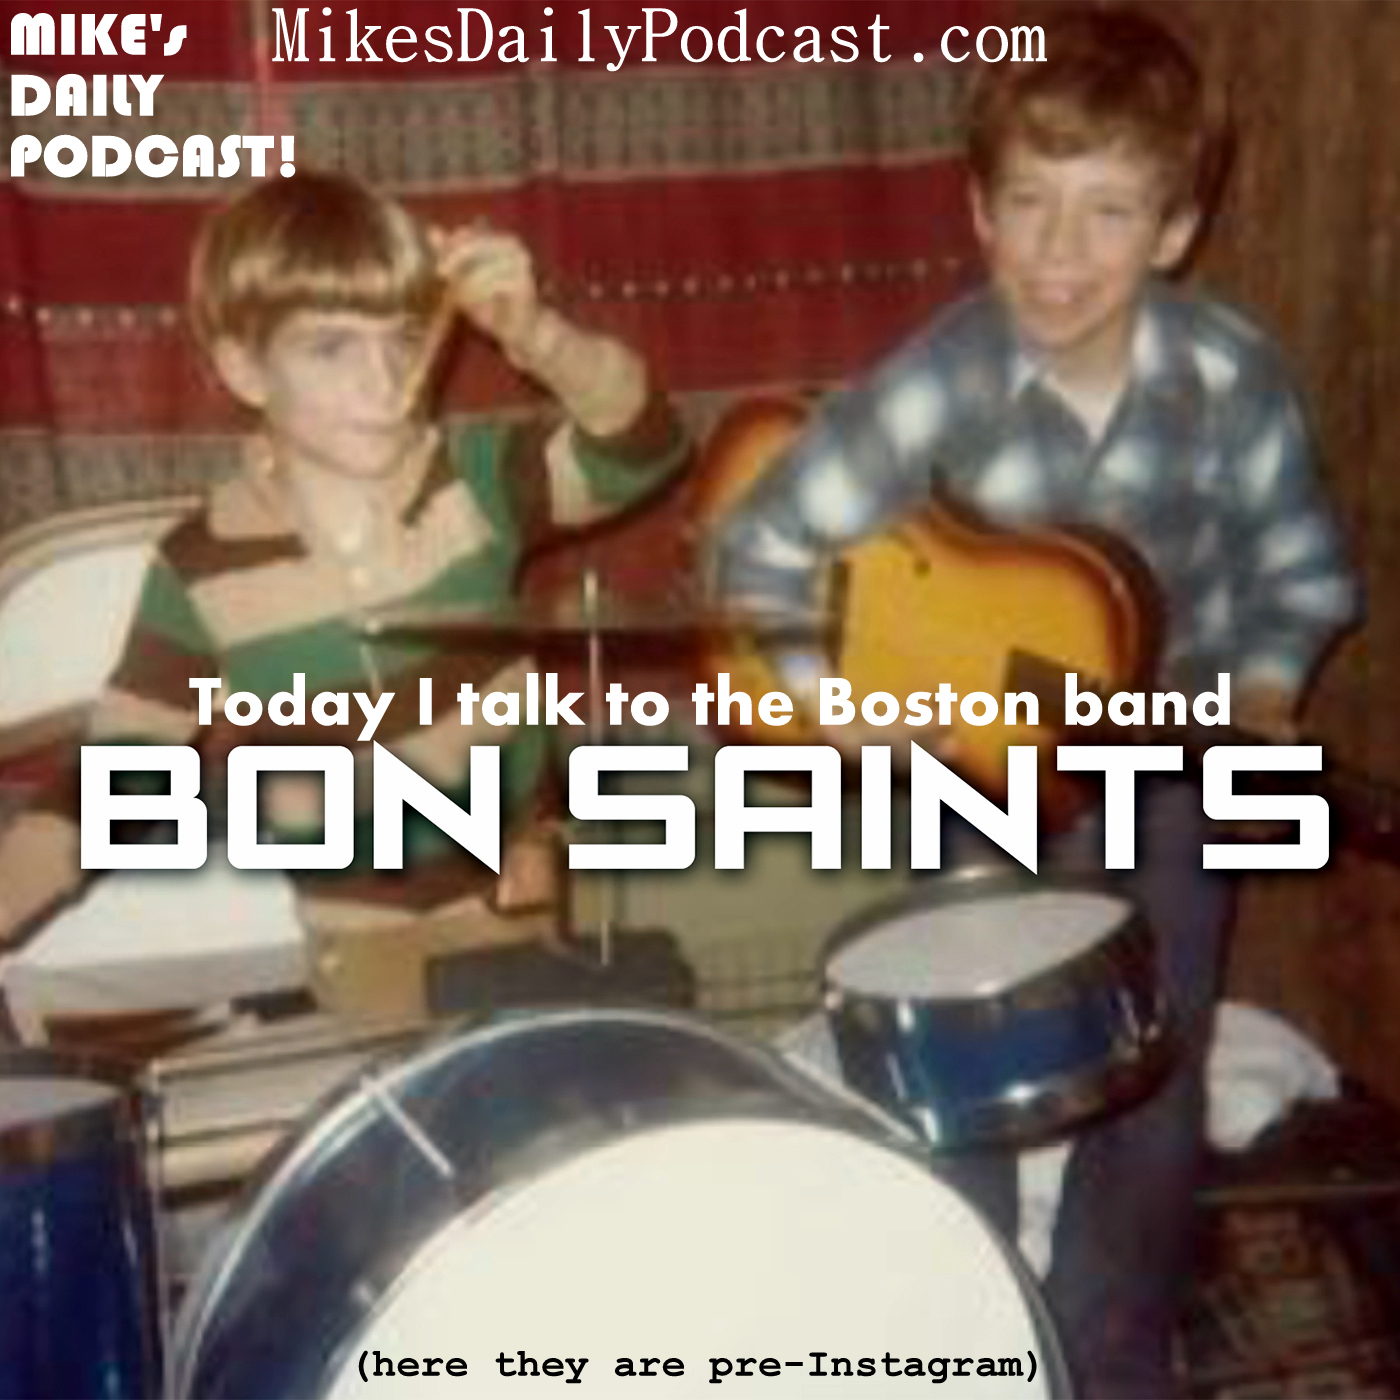 MIKEs-DAILY-PODCAST-3-28-14-Bon-Saints-Roger-Bonsang-Keith-Bonsang